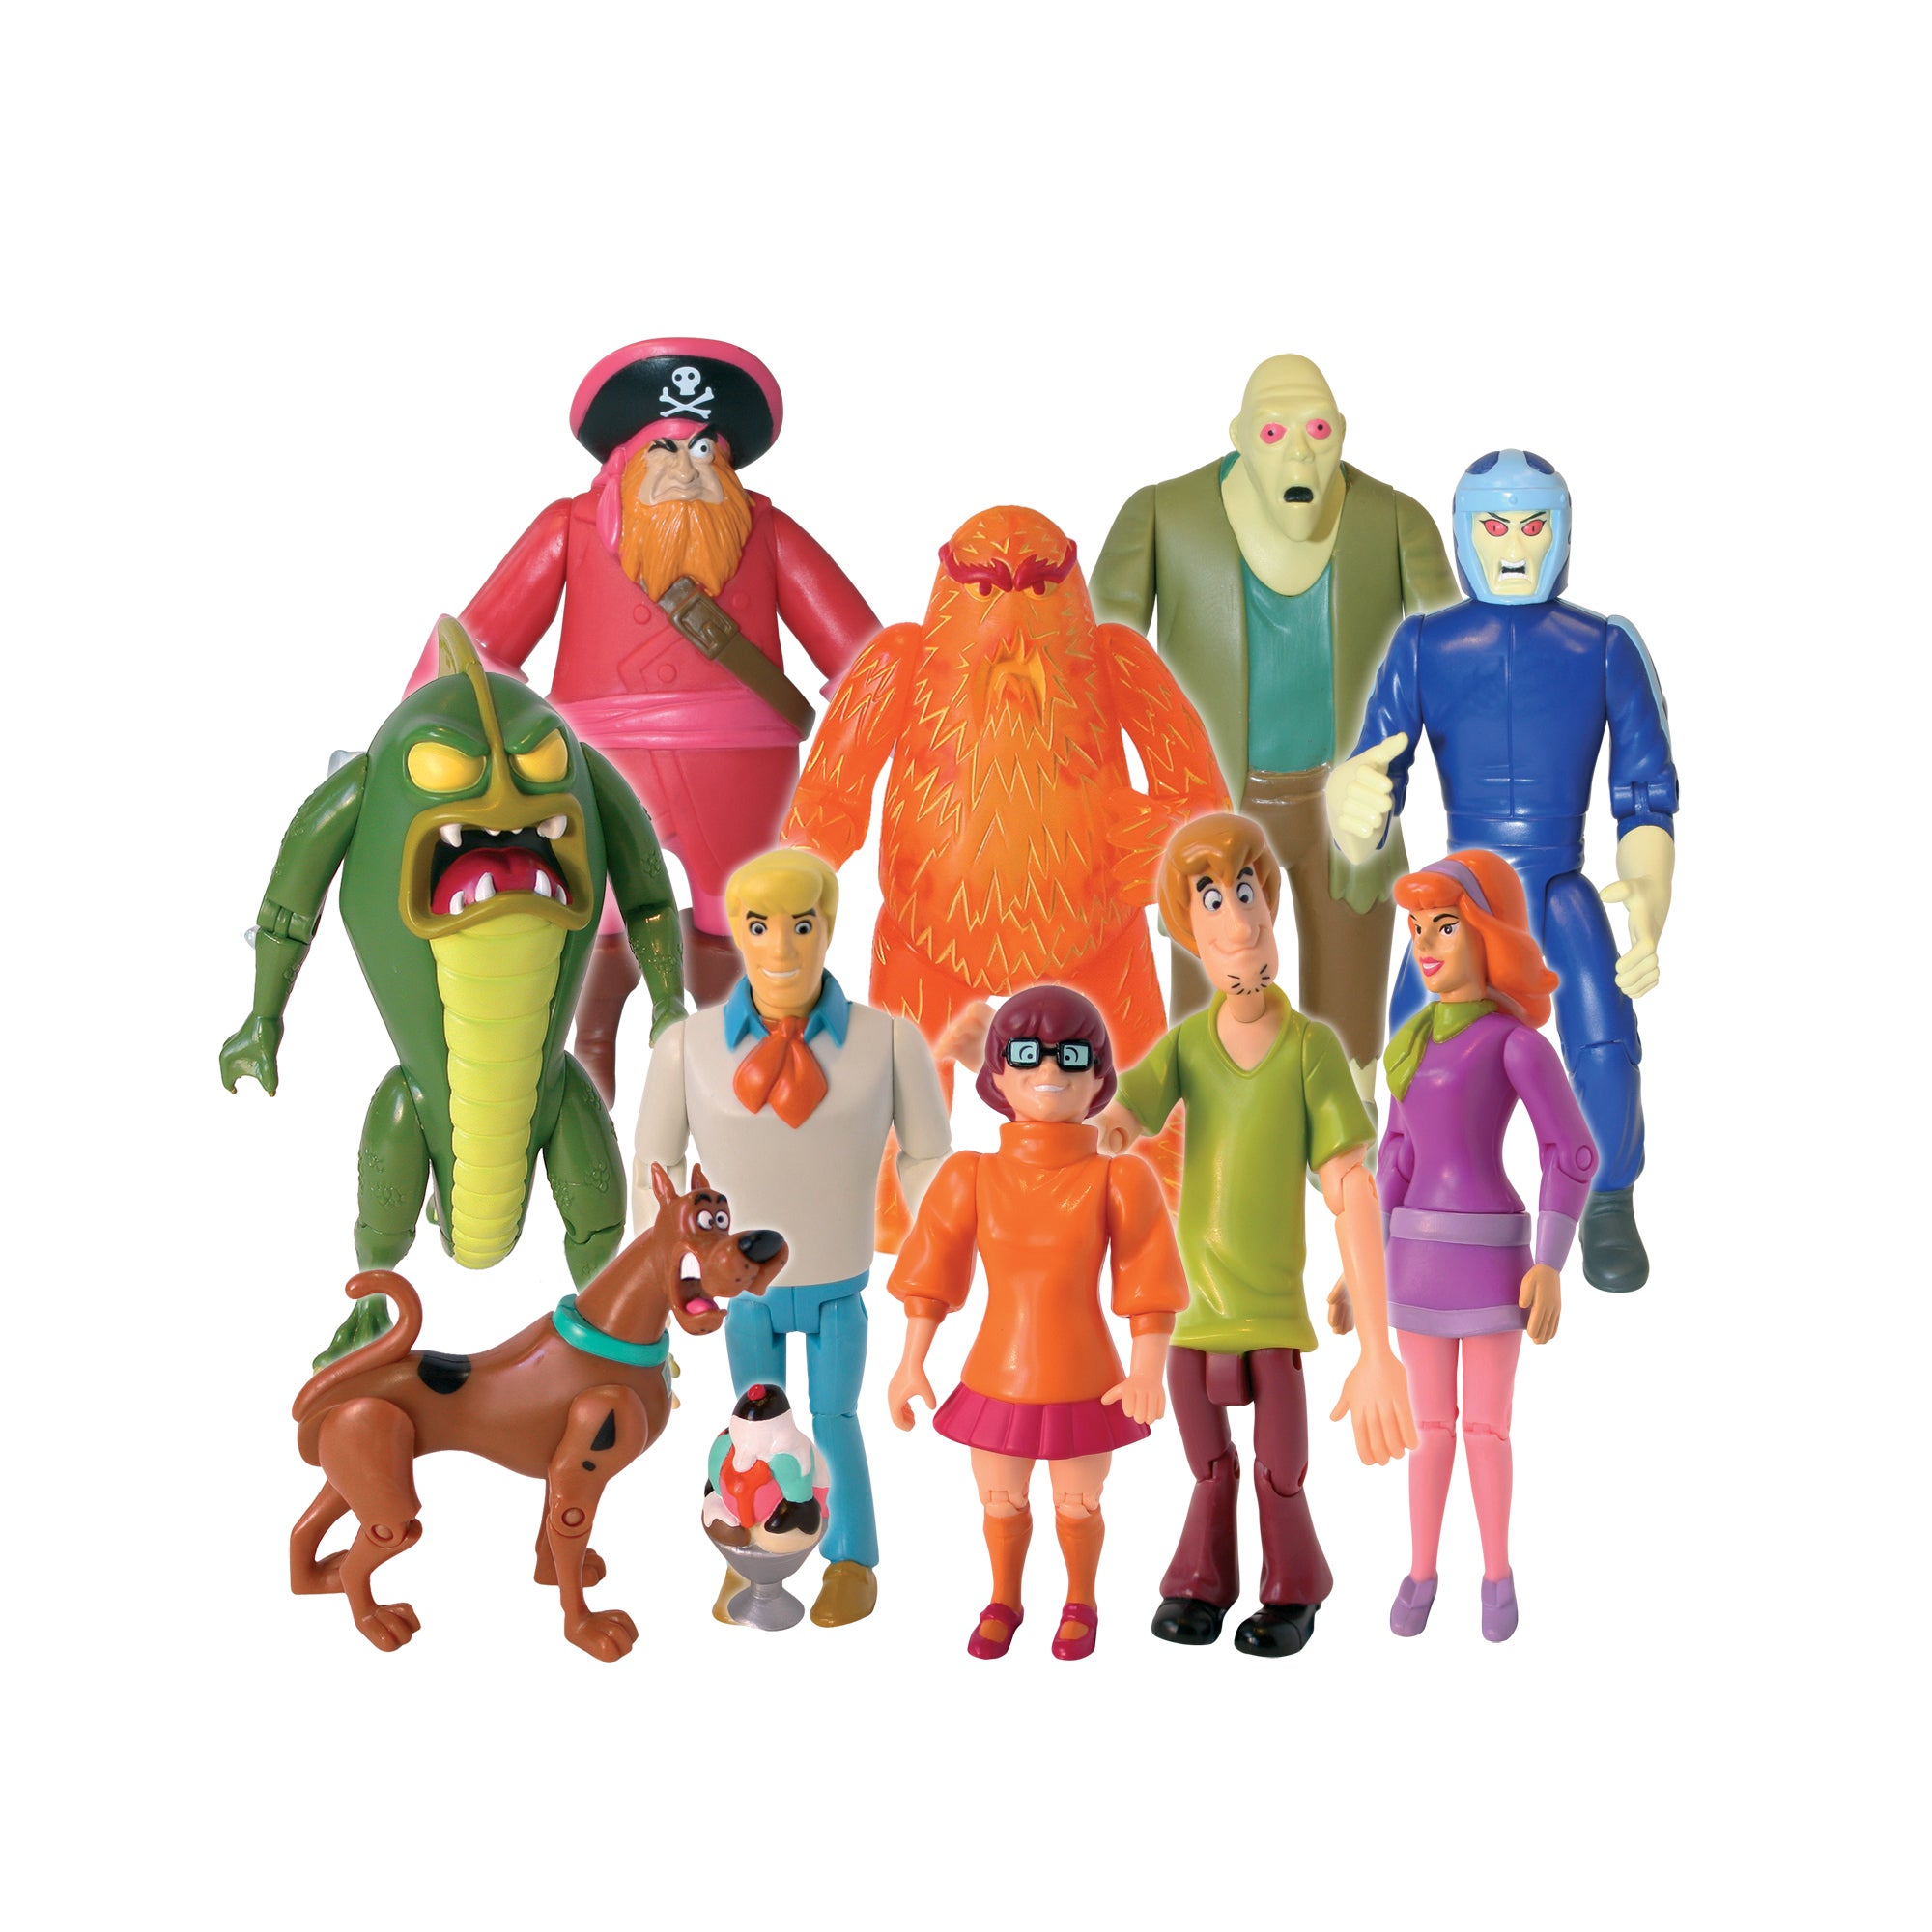 Scooby Doo Monster Set Action Figure, 10 Pack, Multi